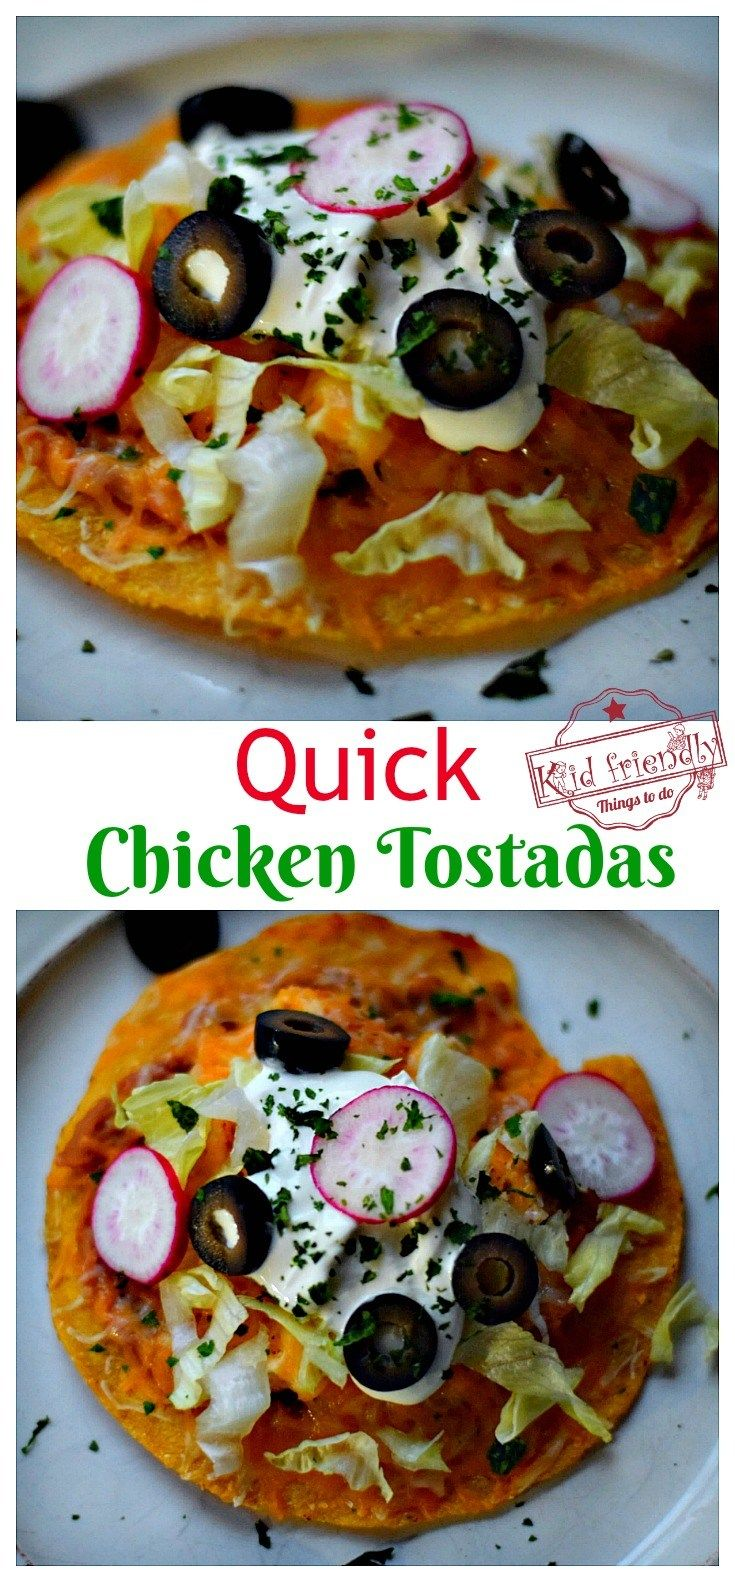 Quick chicken tostadas easy mexican food recipe easy mexican quick chicken tostadas easy mexican food recipe easy mexican food recipes mexican food recipes and tostadas forumfinder Choice Image